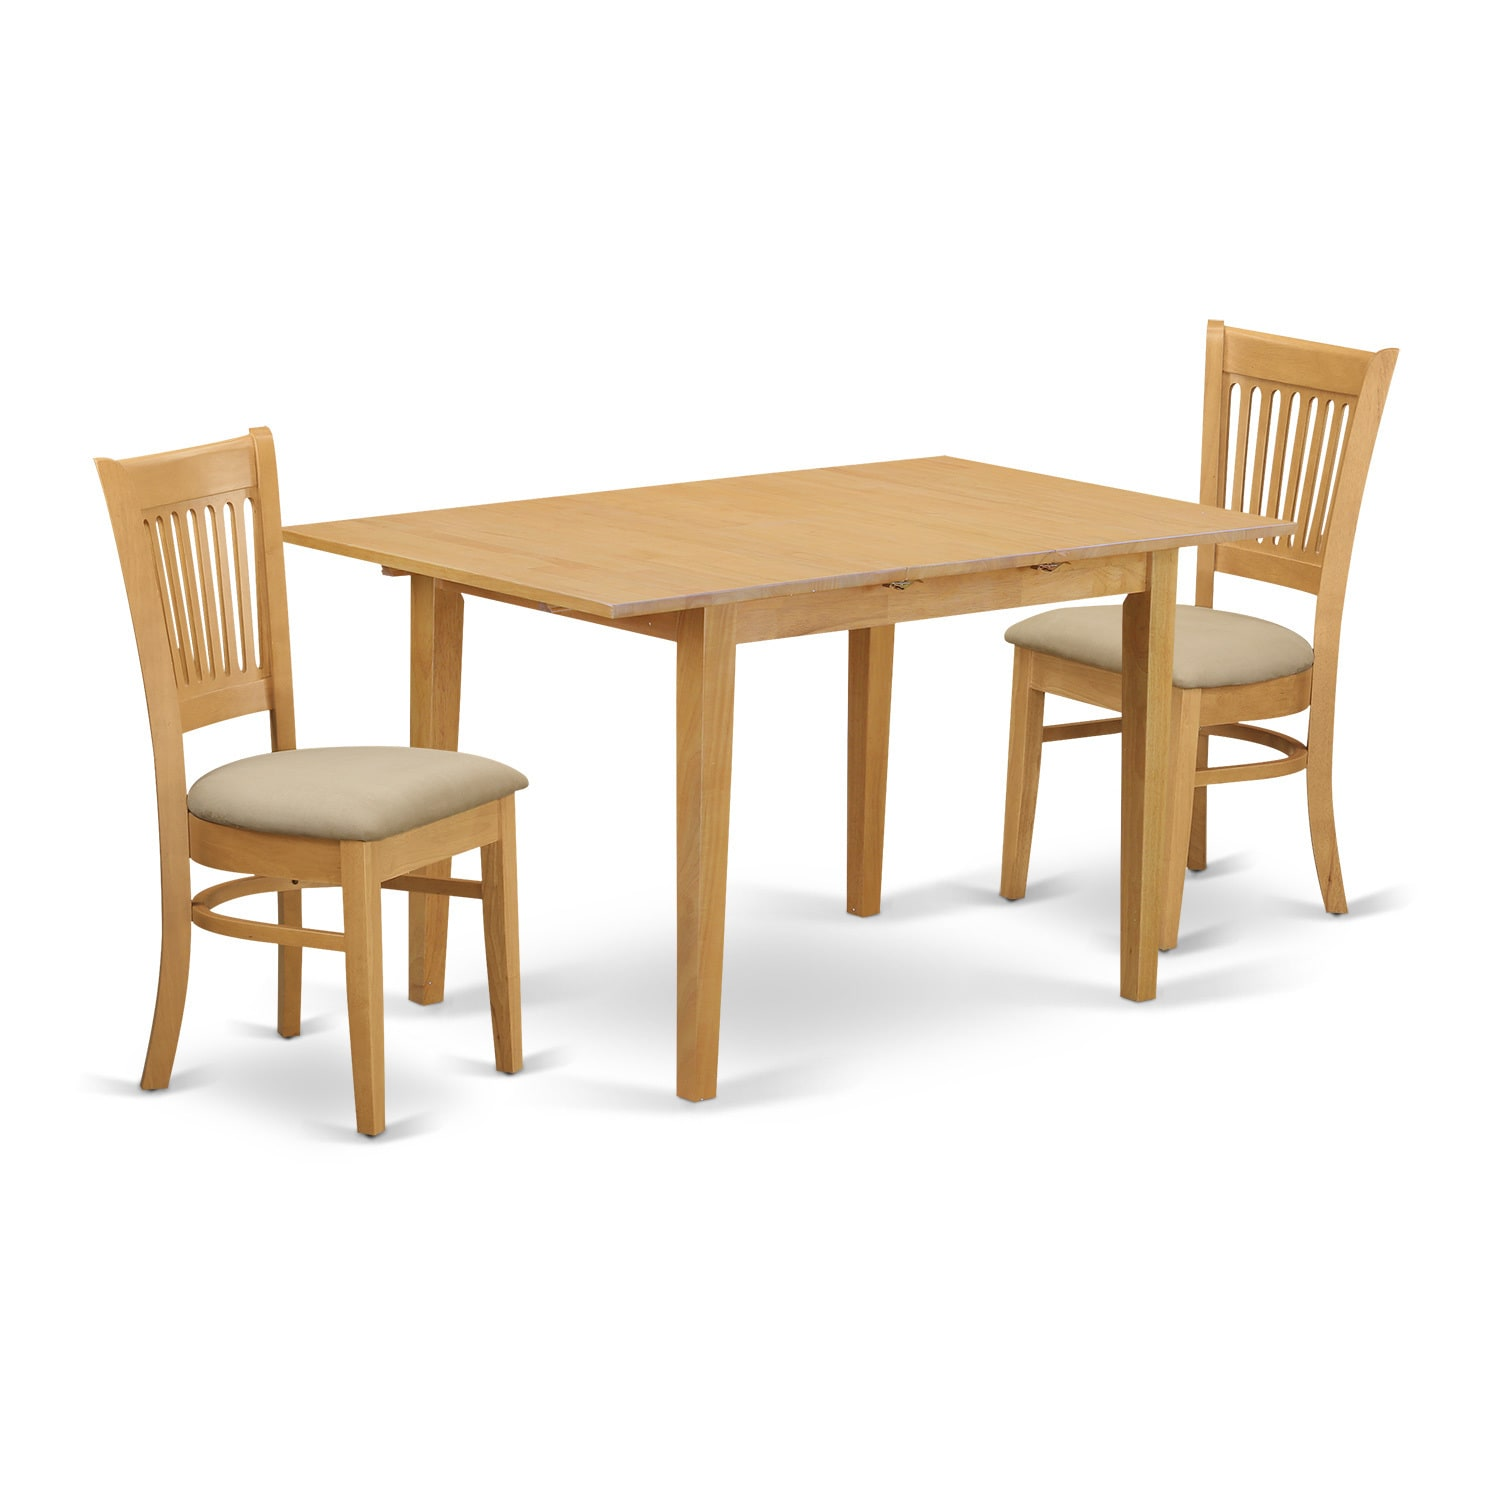 NOVA3-OAK 3-Piece Dining room set - small dining table an...